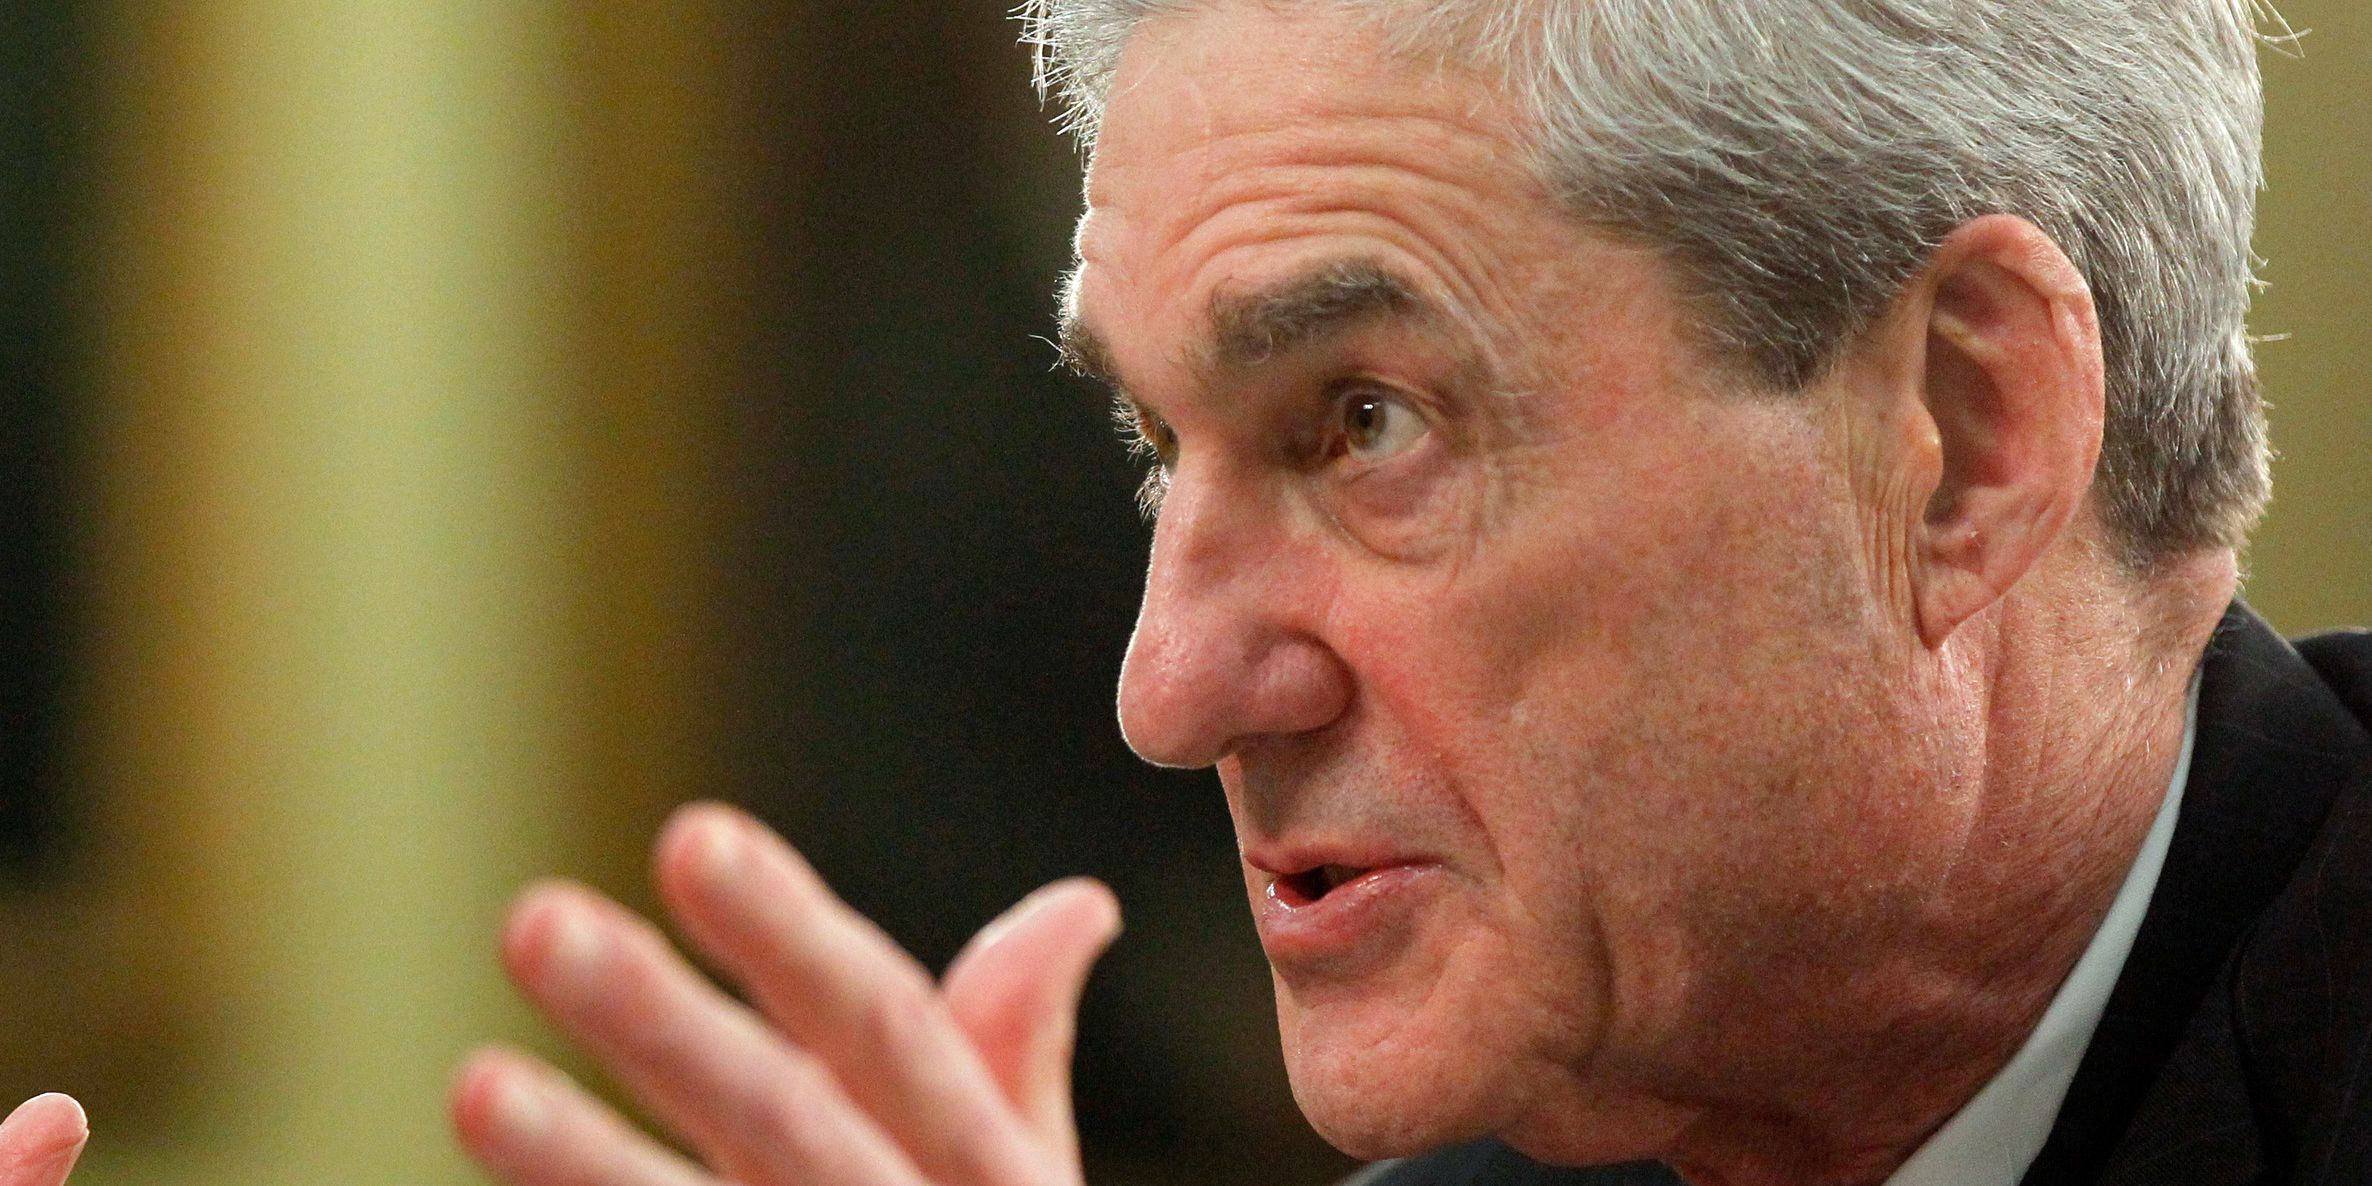 Mueller report: Congress, public await key findings in 2-year Russia probe